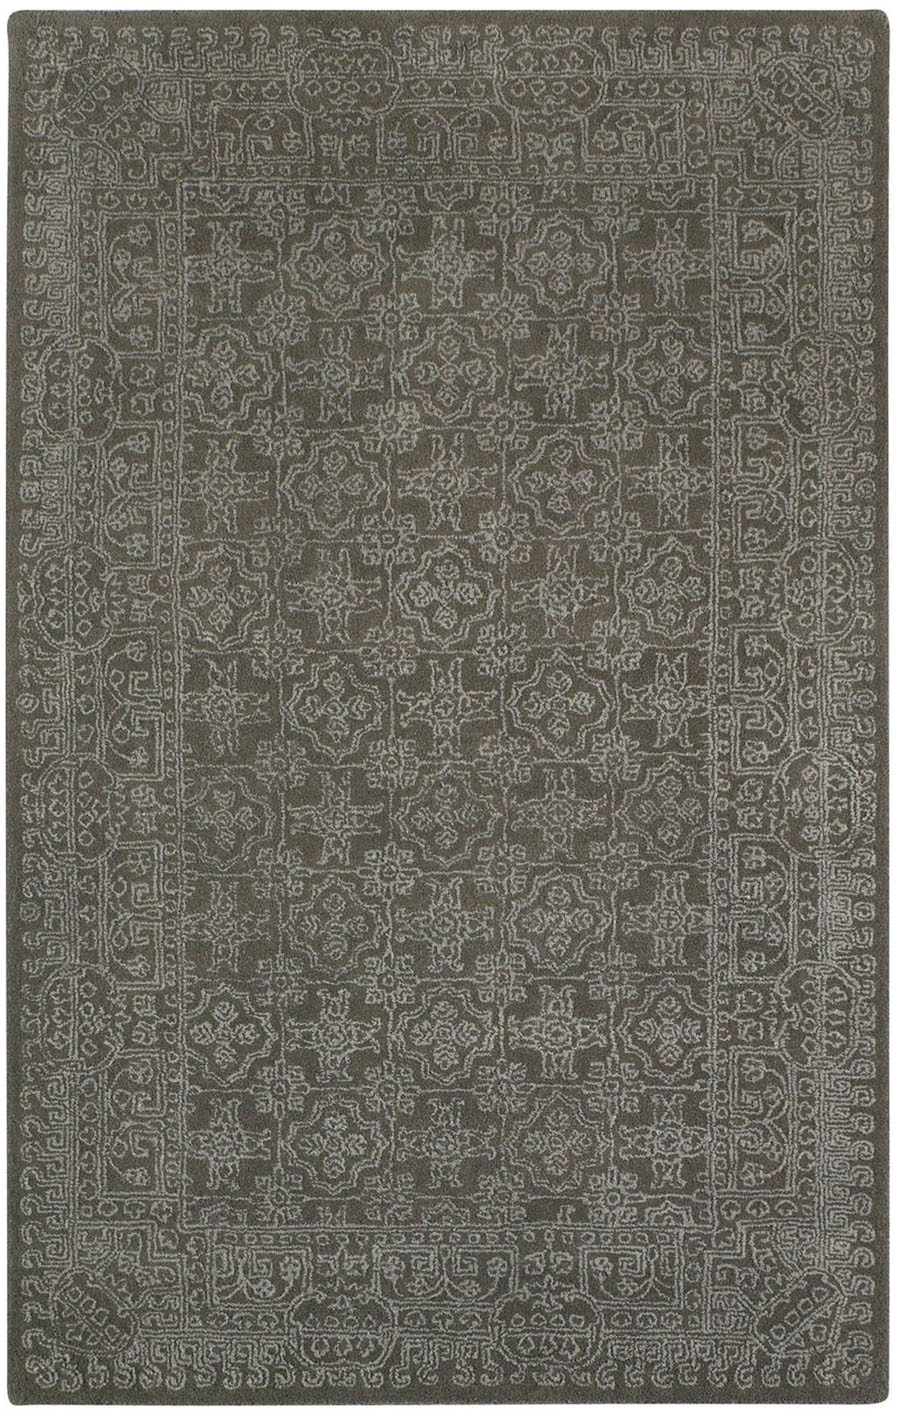 Capel Interlace 9243 730 Coal Rug